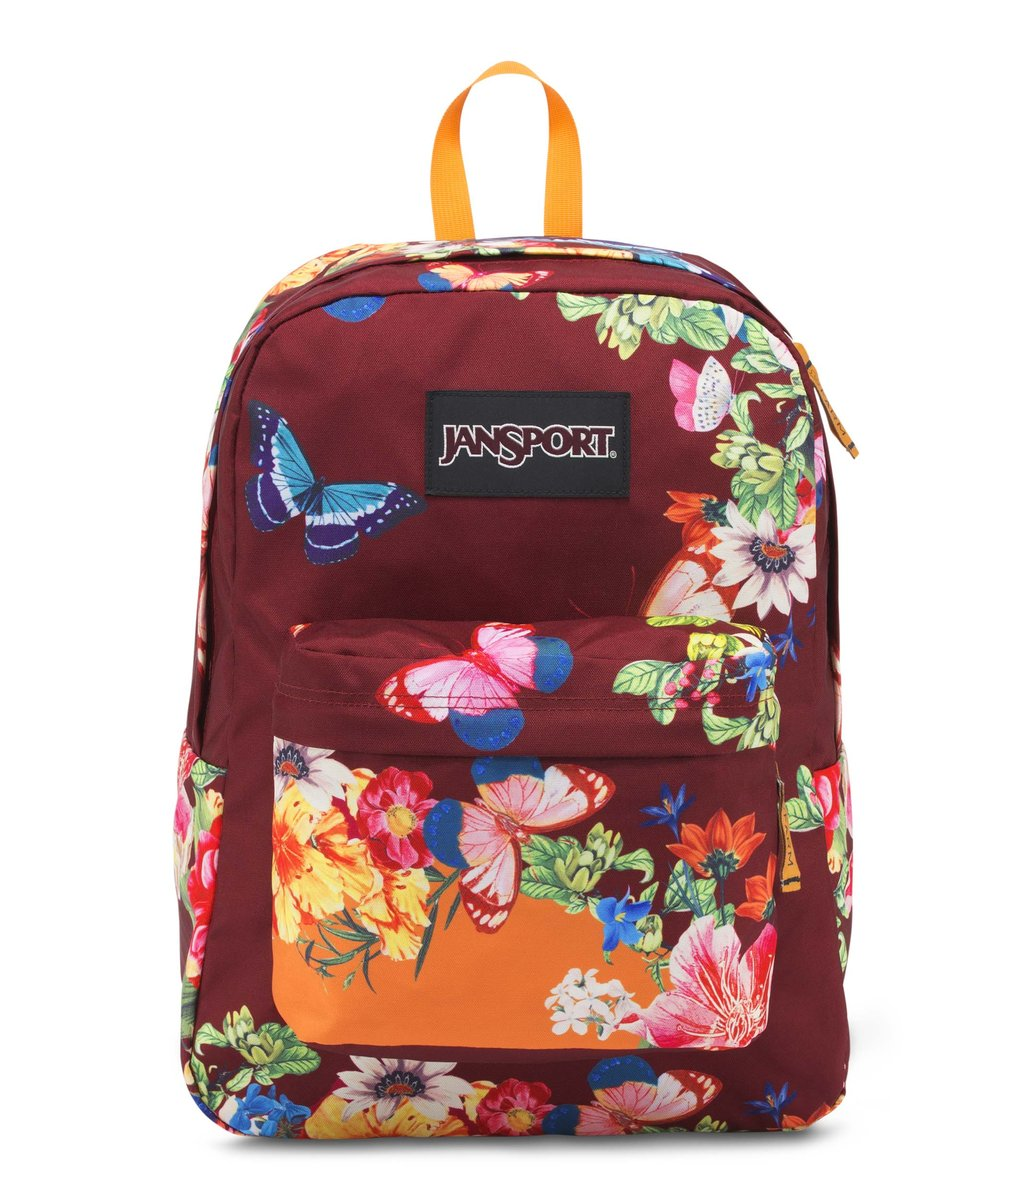 Jansport Backpack Shopping - CEAGESP